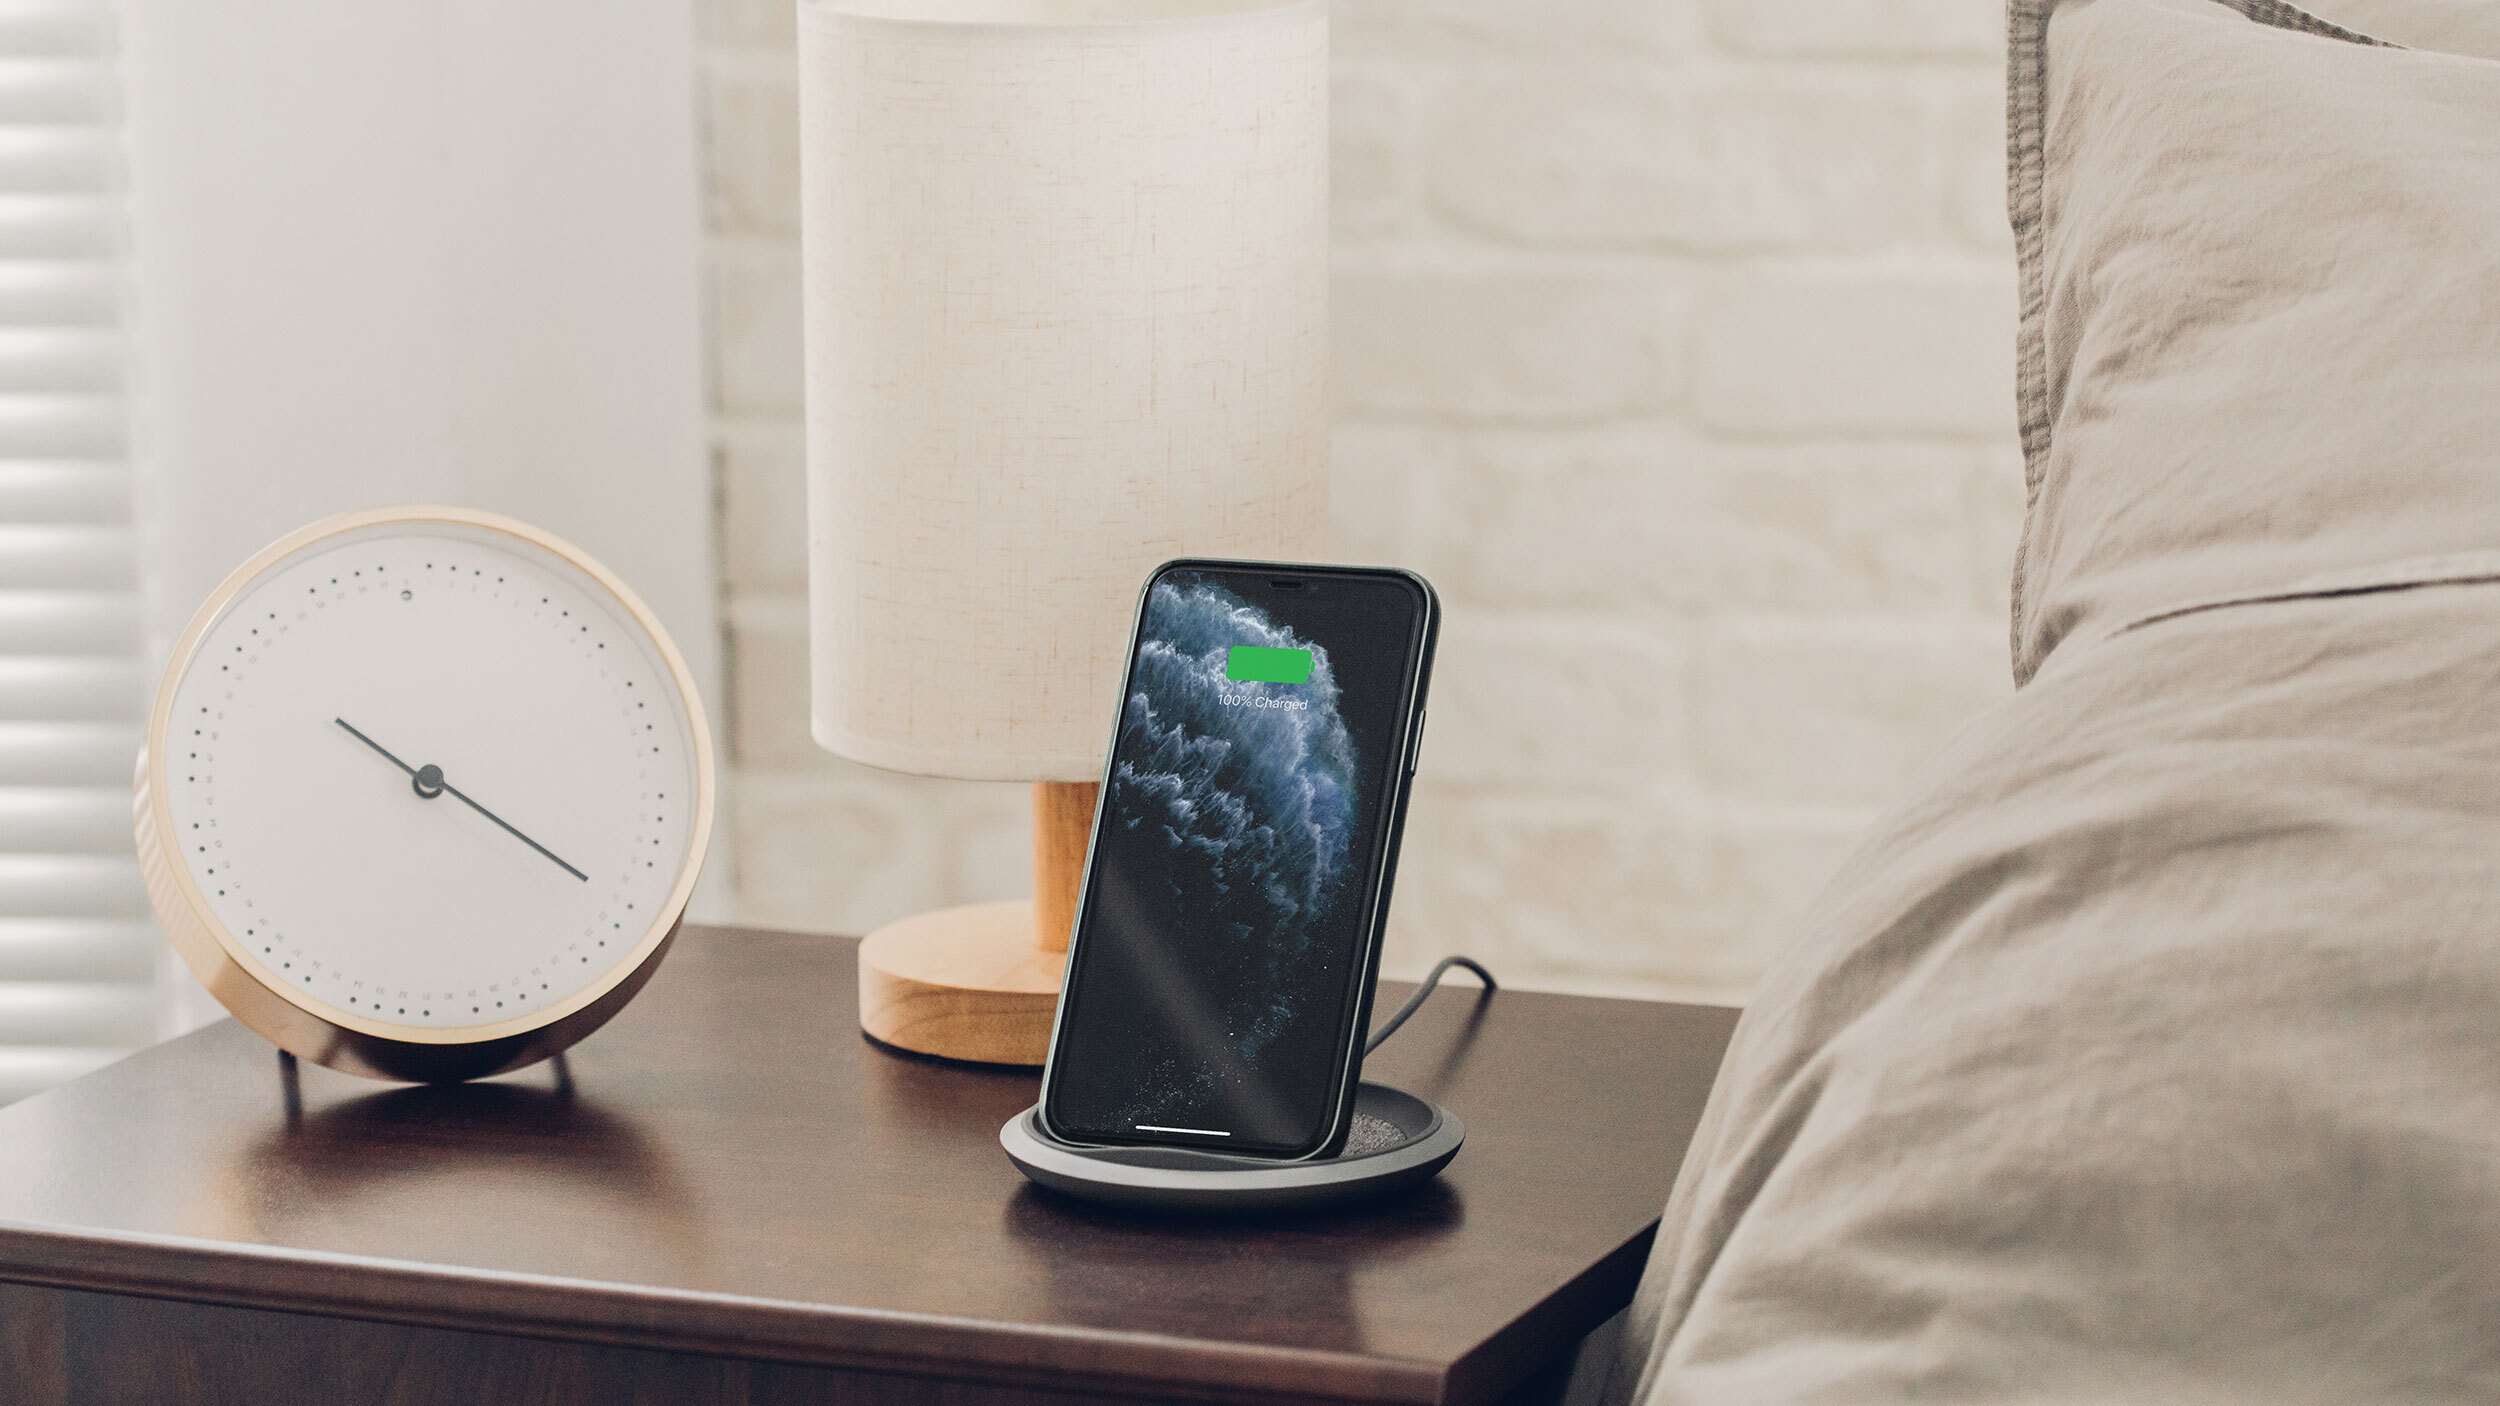 A smartphone on a Moshi Lounge Q charging stand on a bedside table next to a bed